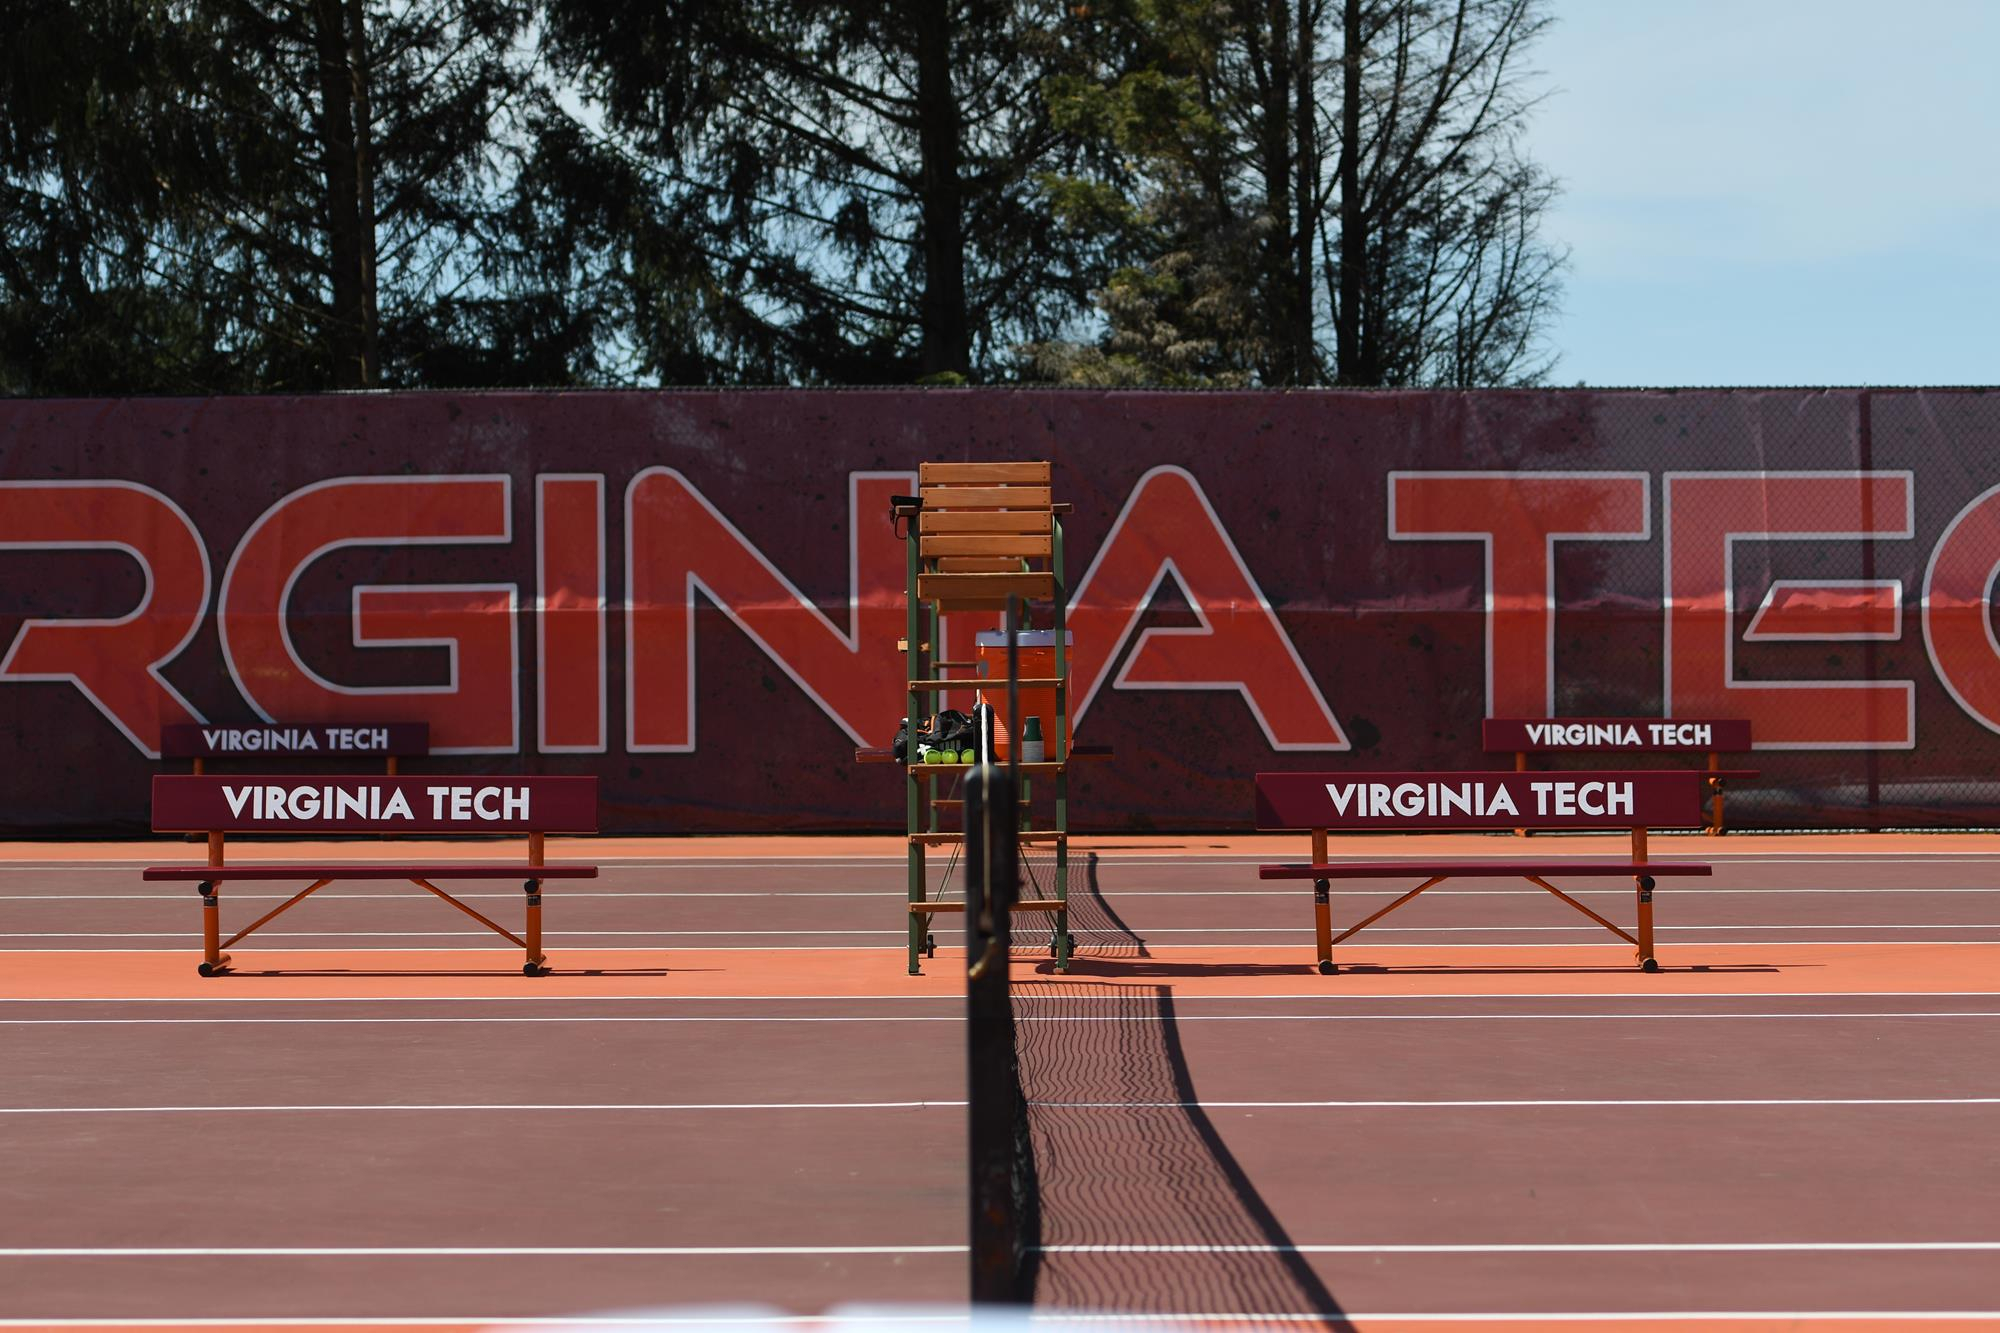 Virginia Tech Announces 2019 Men's Tennis Schedule - Virginia Tech for Virginia Tech Academic Calendar 2019 2020